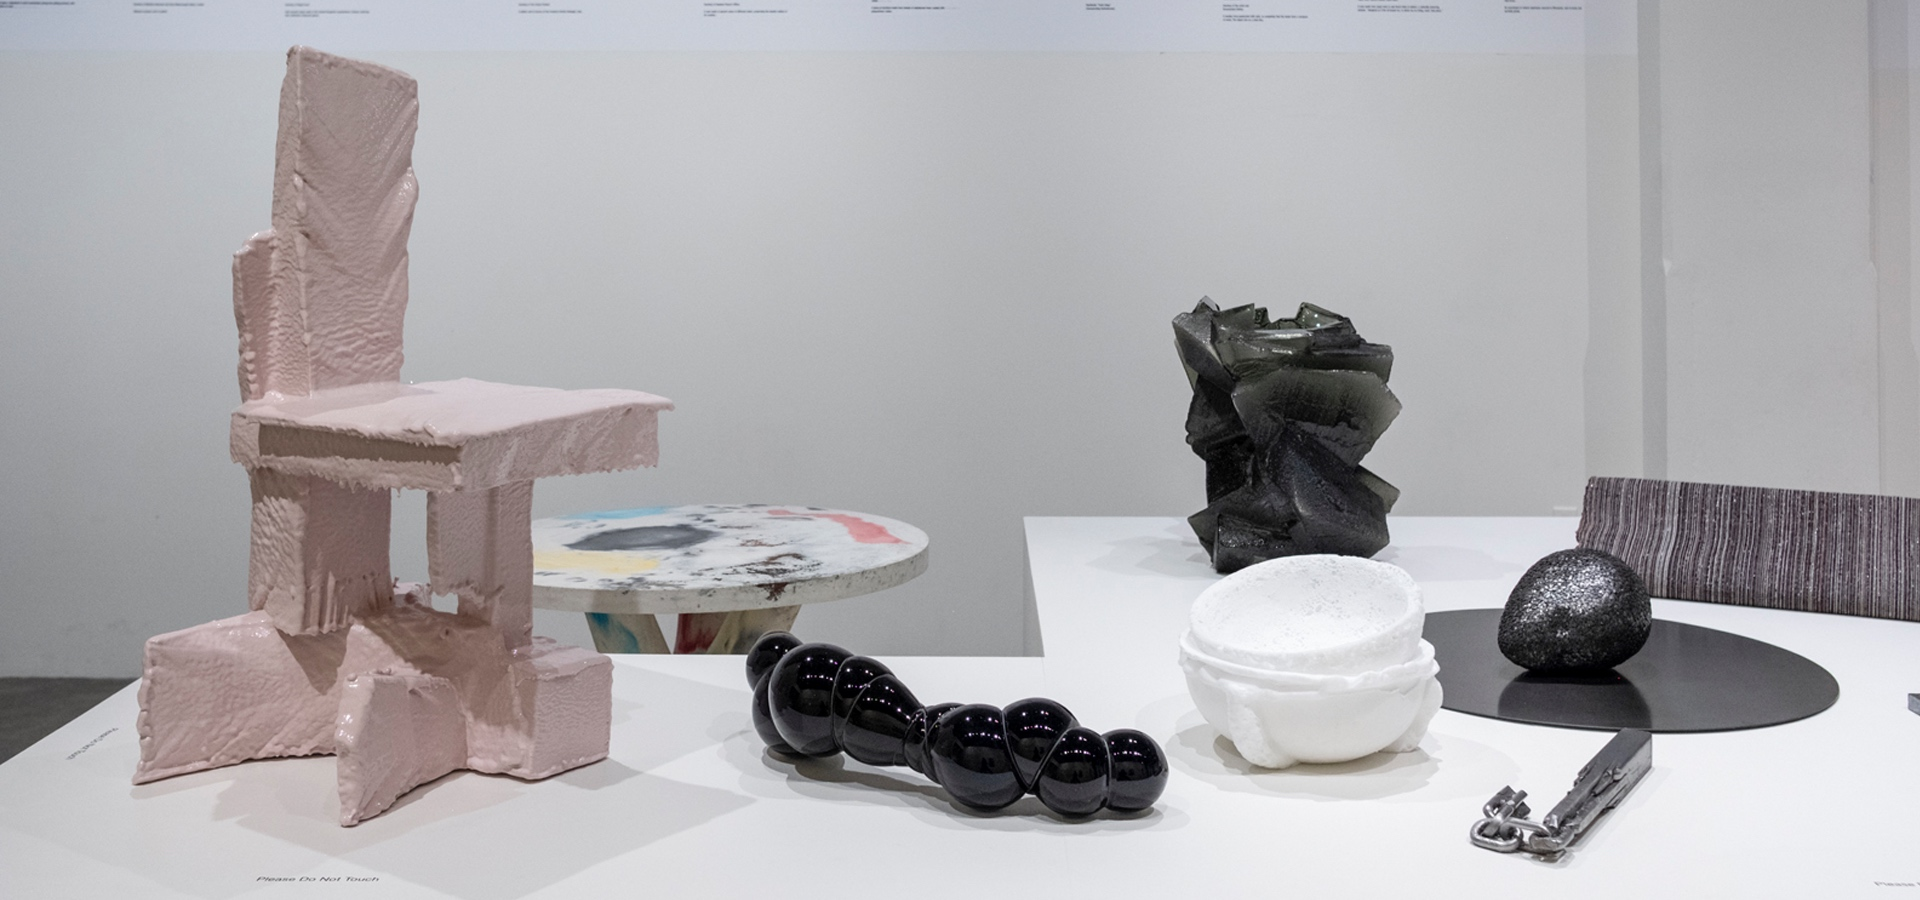 Sculptures created with different material in museum exhibition